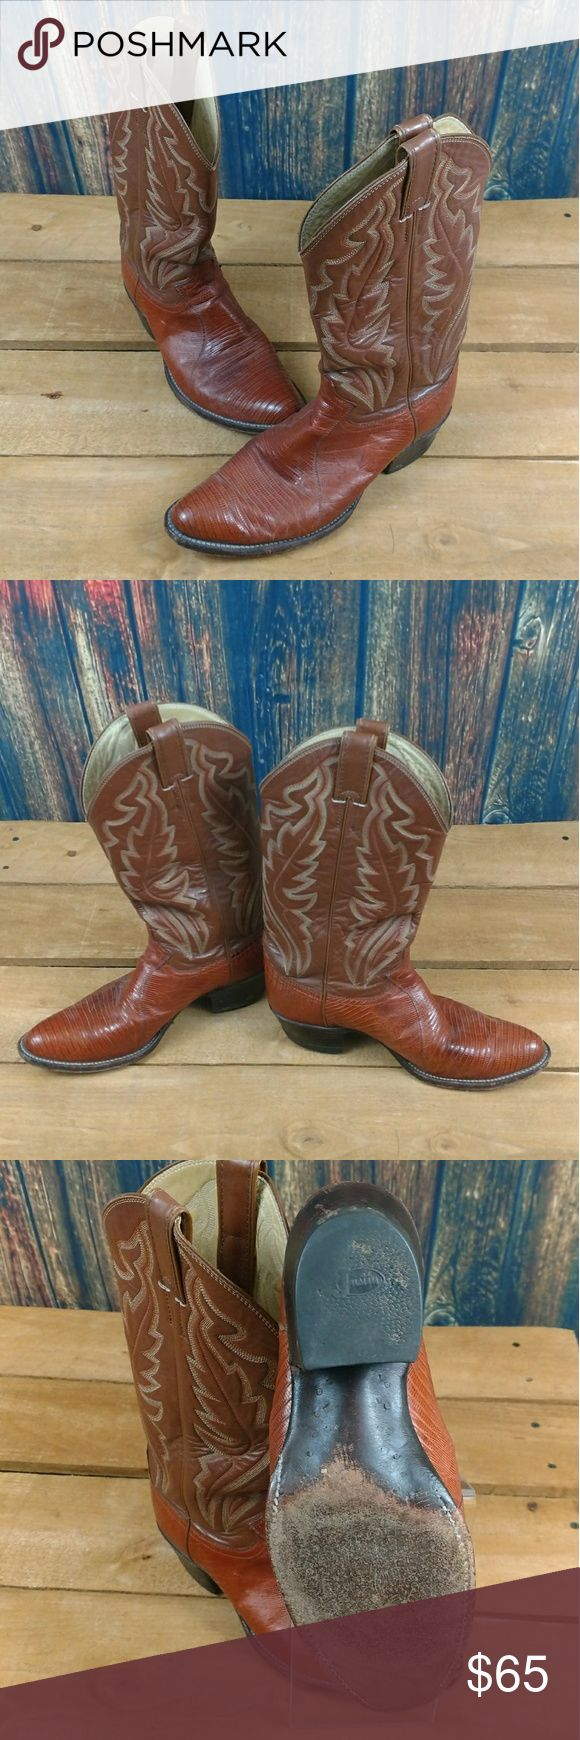 "JUSTIN EXOTIC IGUANA SKIN LEATHER COWBOY BOOTS JUSTIN MENS EXOTIC IGUANA SKIN LEATHER COWBOY WESTERN BOOTS  US 8 UK 7 INSIDE LENGTH: 9.5""  GOOD PRE-OWNED CONDITION WITH NO RIPS TEARS OR STAINS.  #1797 Justin Boots Shoes Cowboy & Western Boots"